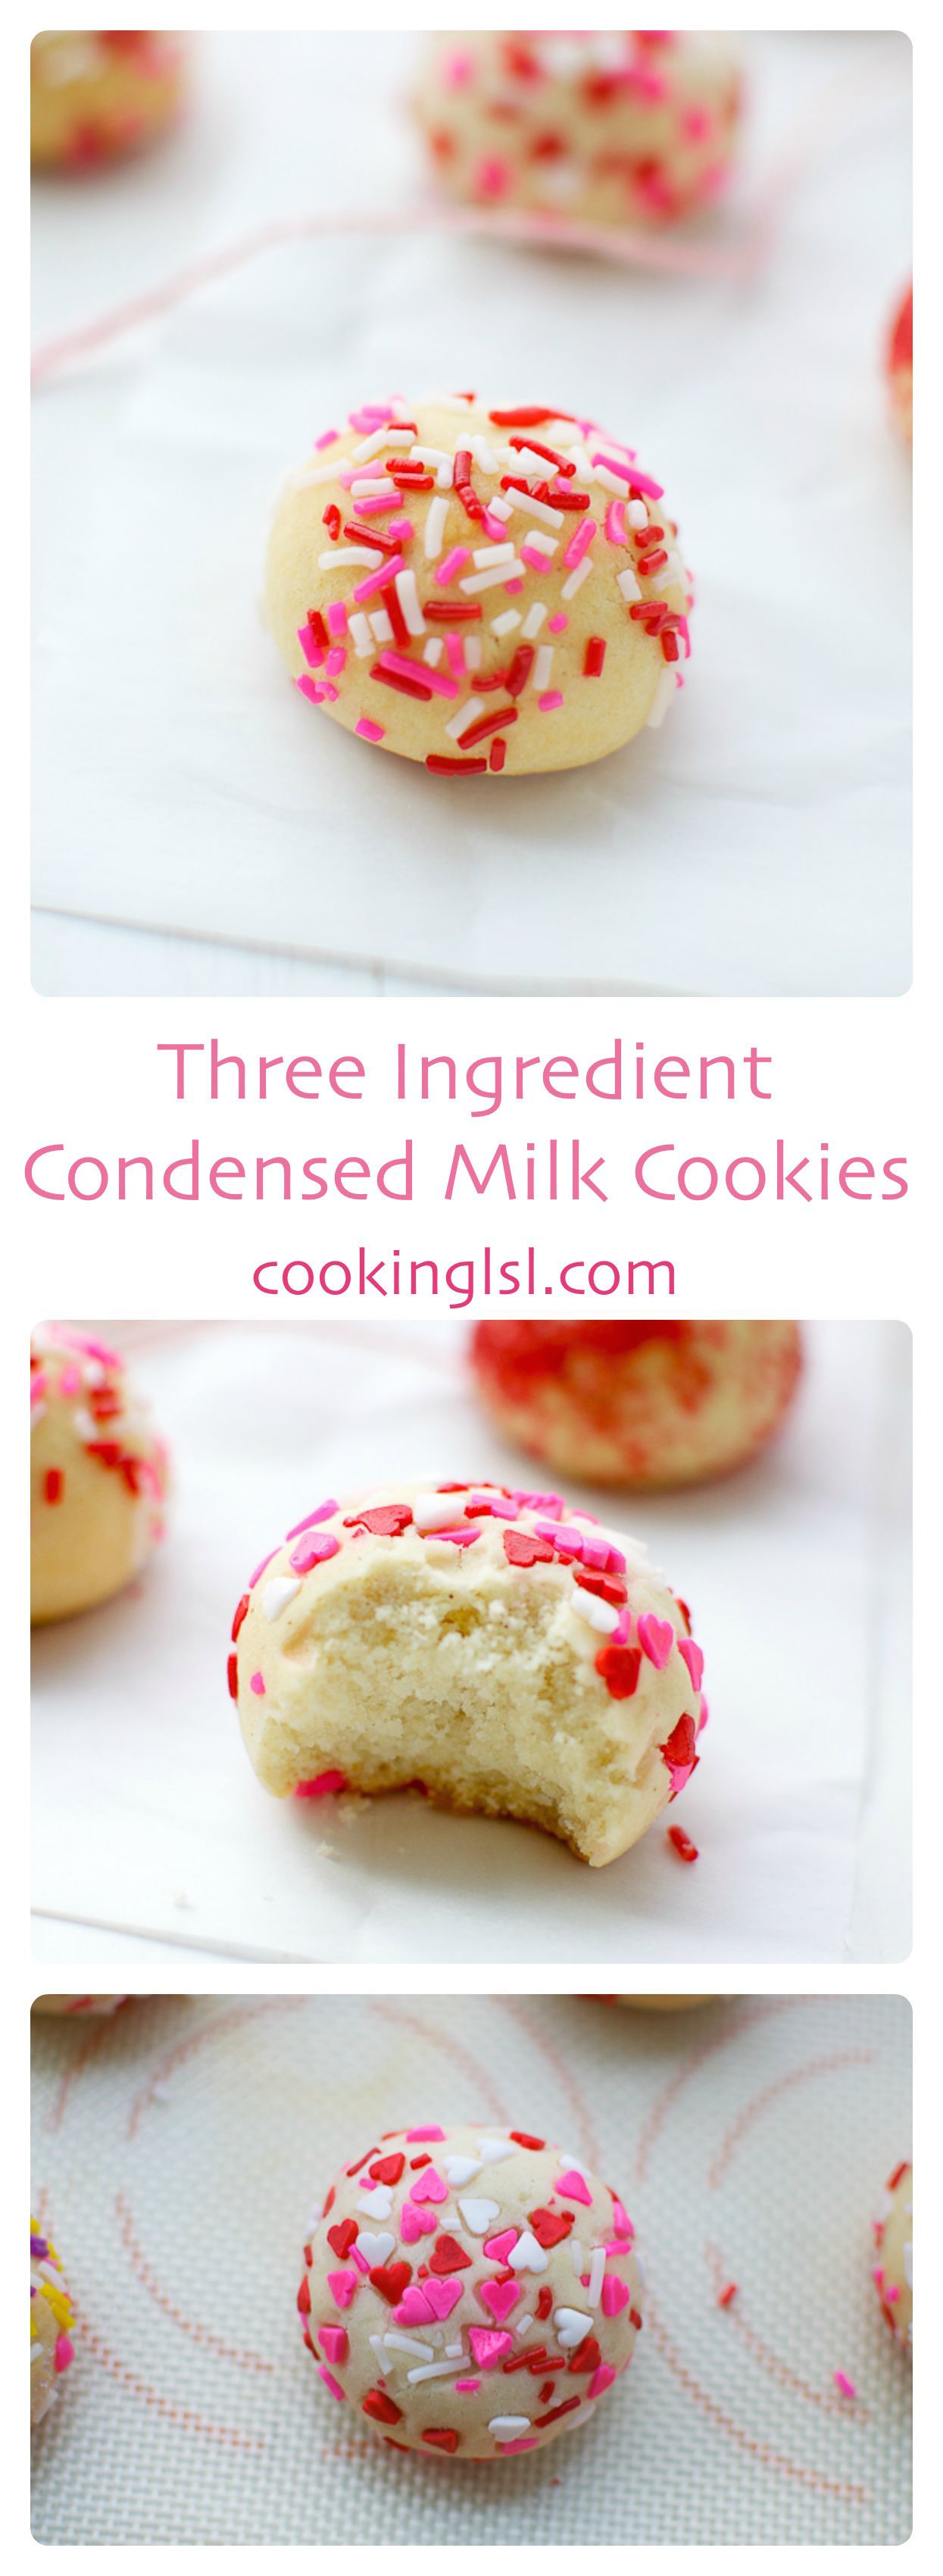 Condensed Milk Cookies Condensed Milk Recipes Desserts Condensed Milk Cookies Milk Recipes Dessert